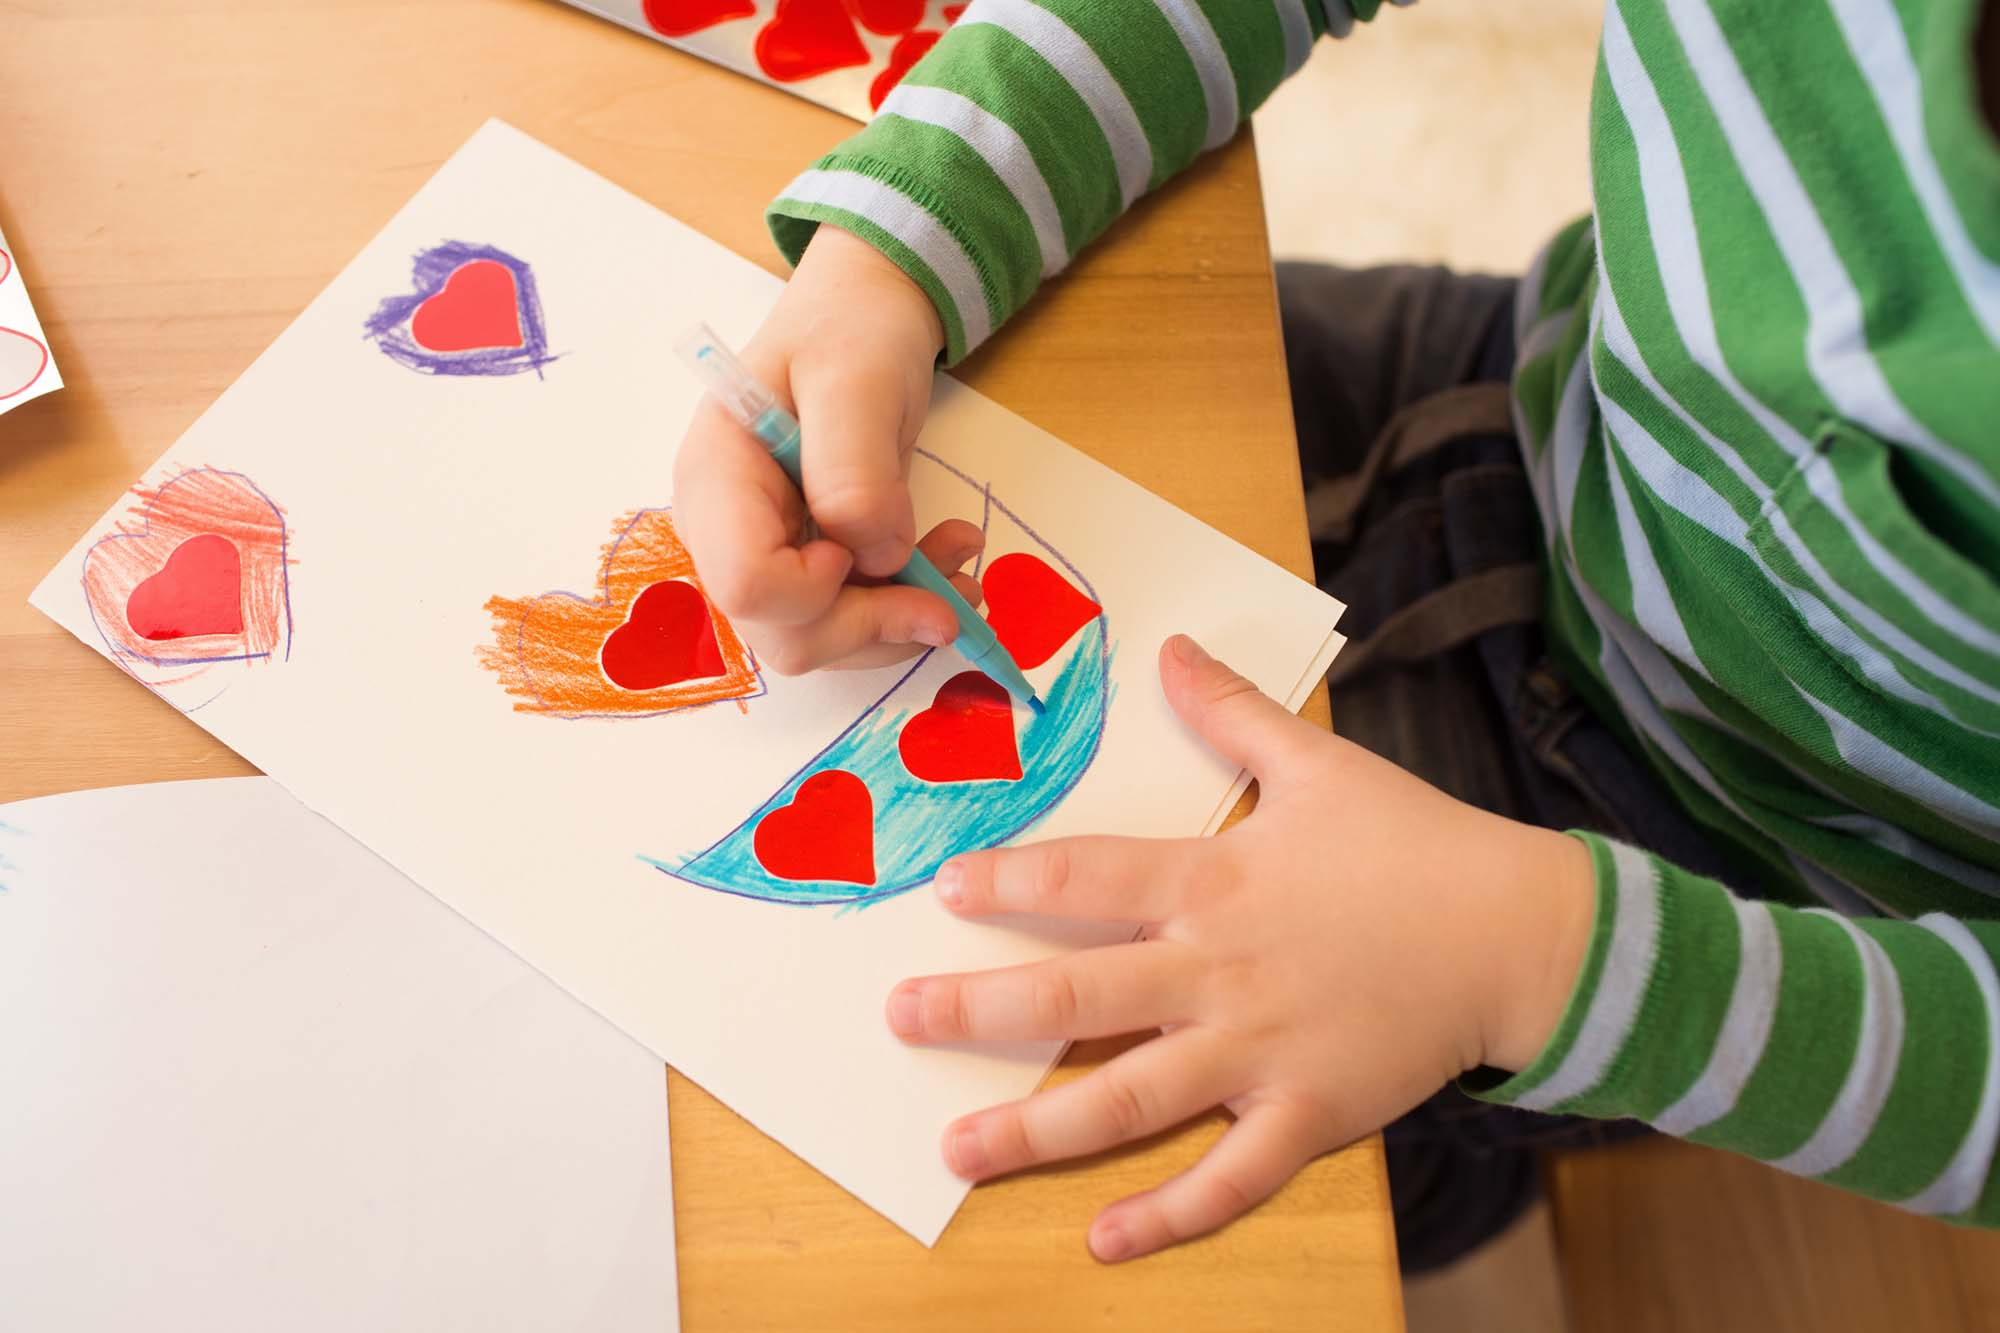 Kids, children, doing Valentine s day arts and crafts with hearts, pencils, paper